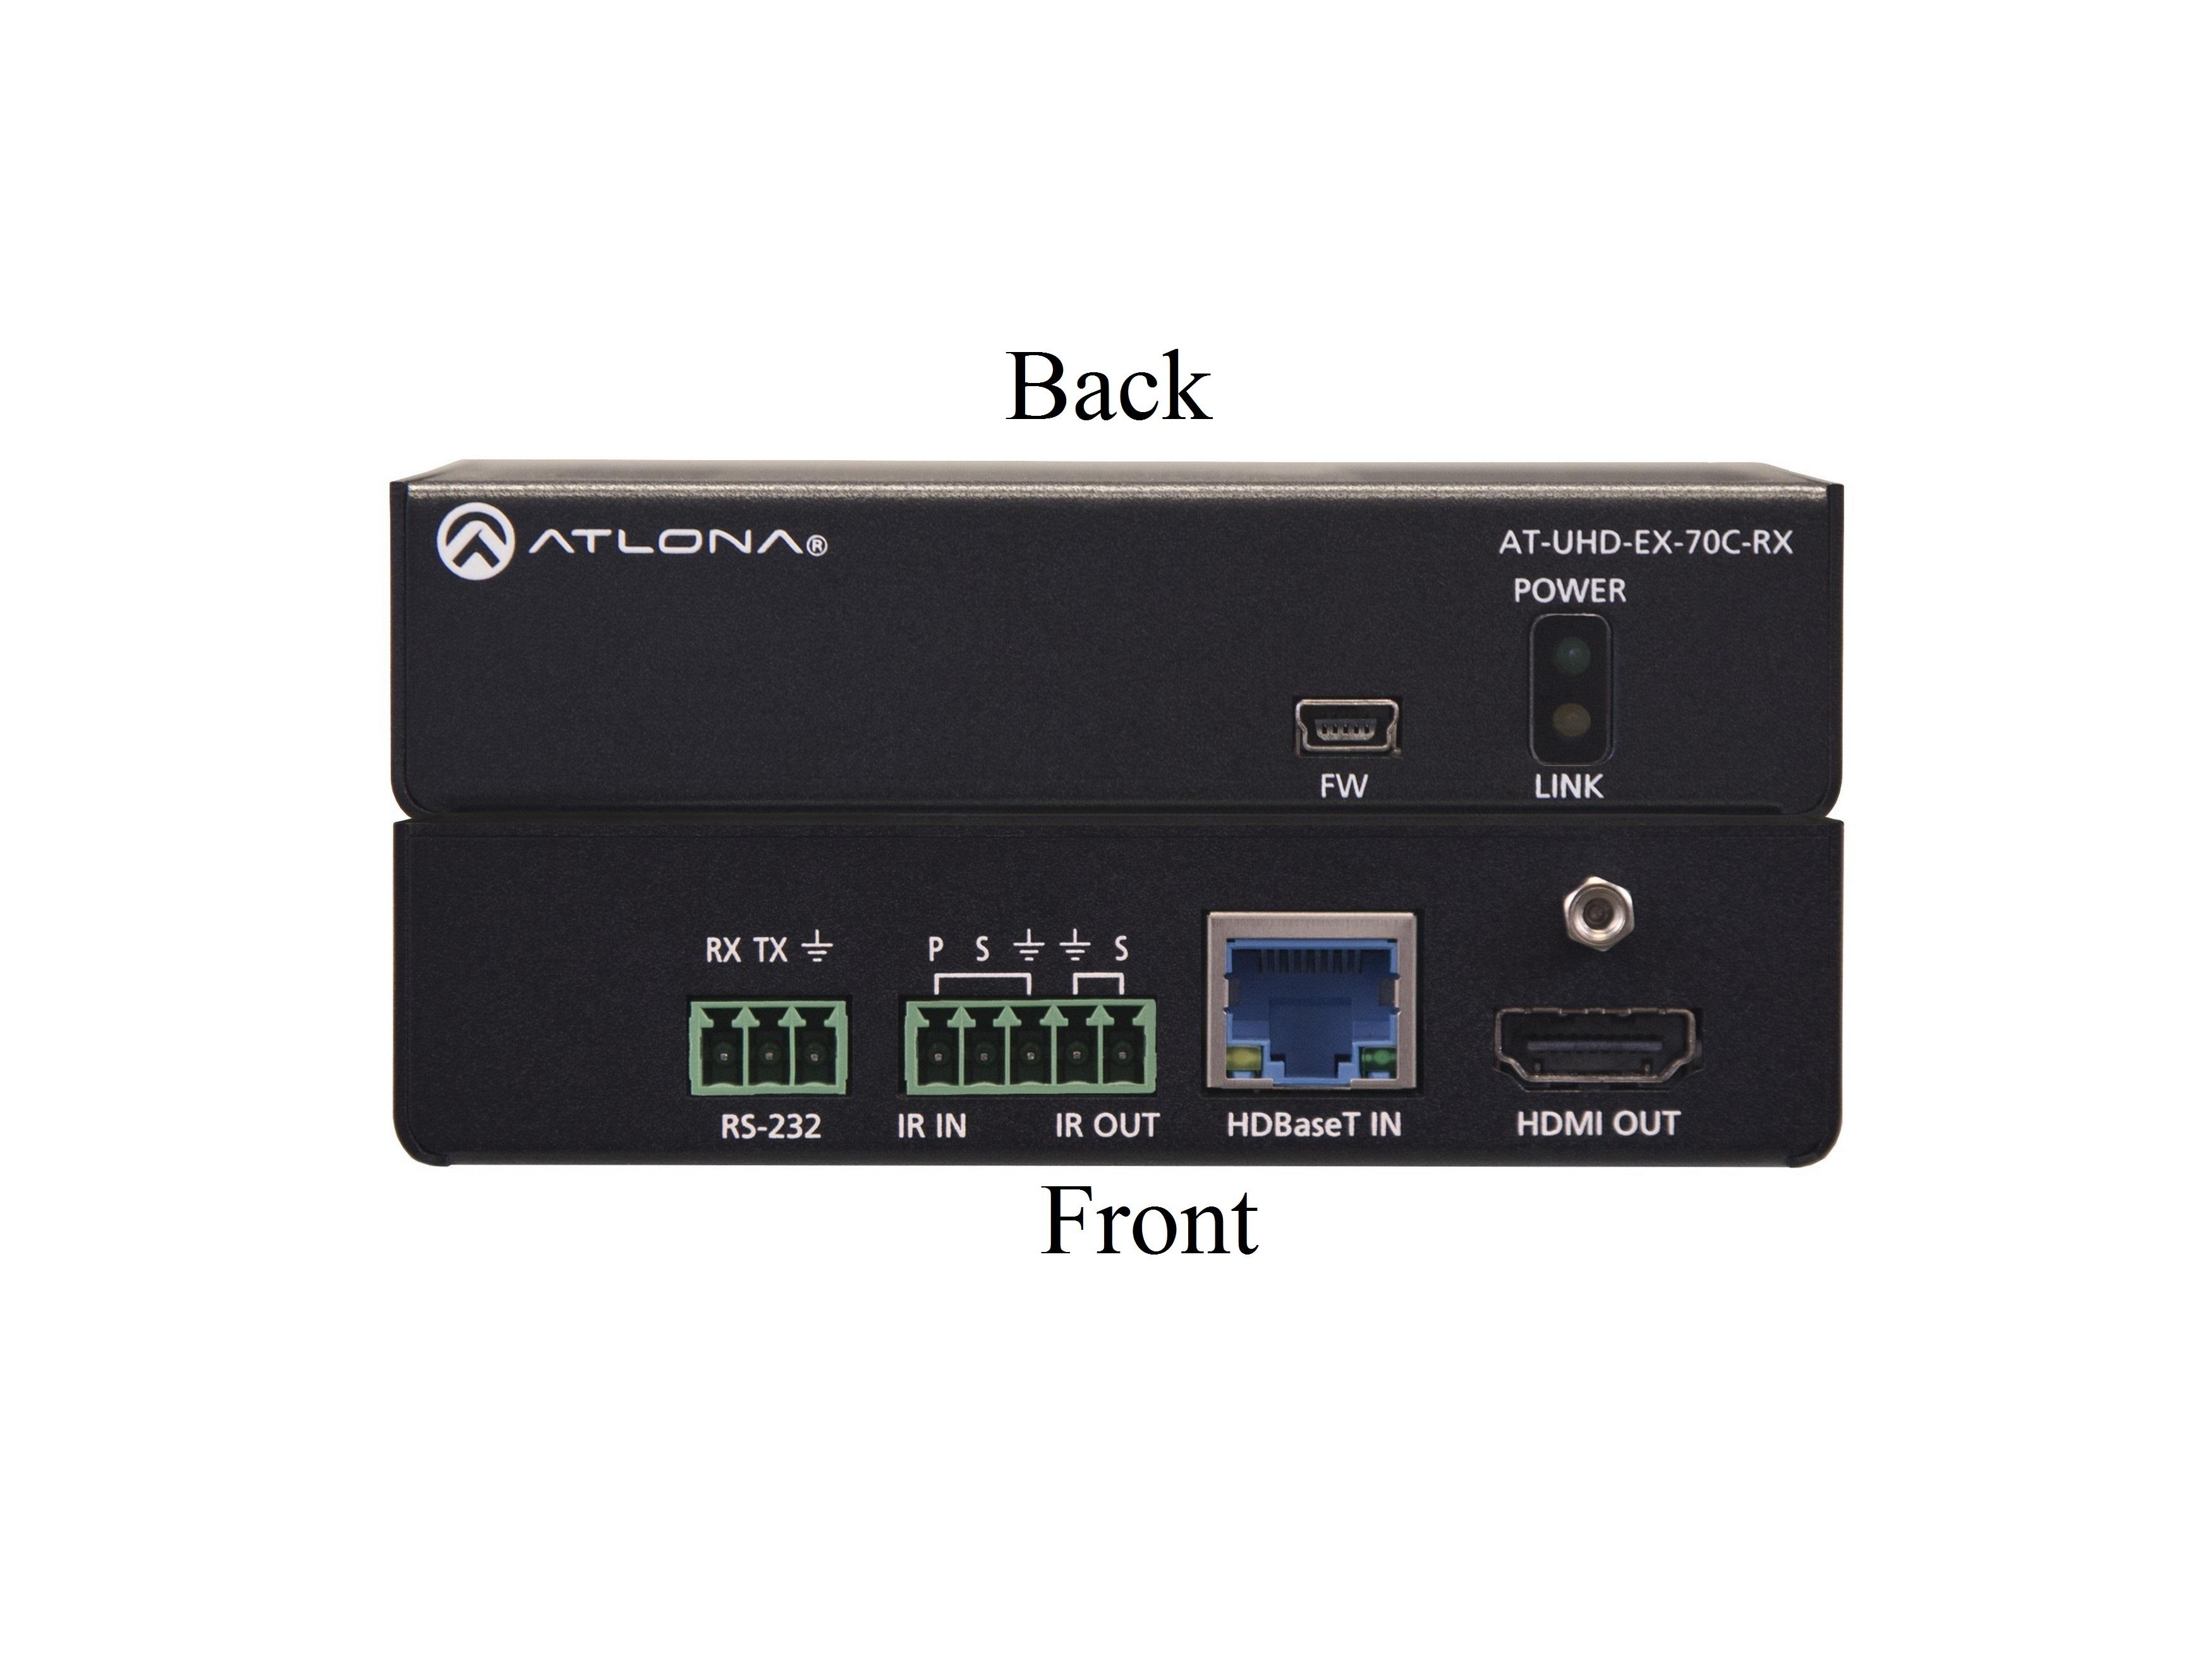 AT-UHD-EX-70C-RX-B 4K/UHD HDMI Over HDBaseT Receiver with Control and PoE by Atlona